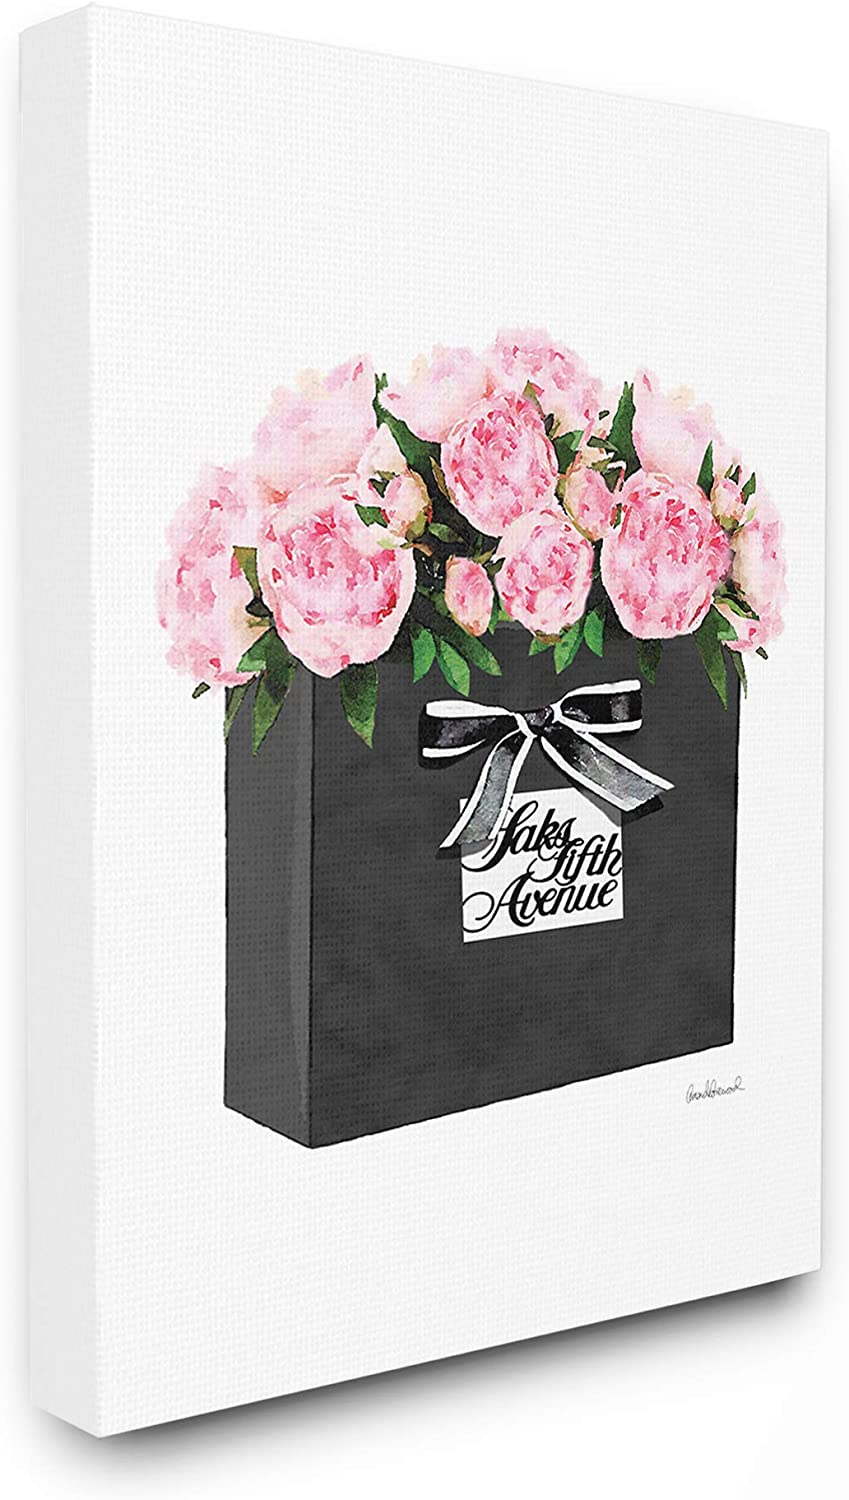 The Stupell Home Décor Collection High End Black Shopping Bag Filled with Pink Peonies Stretched Canvas Wall Art, Multi-Color